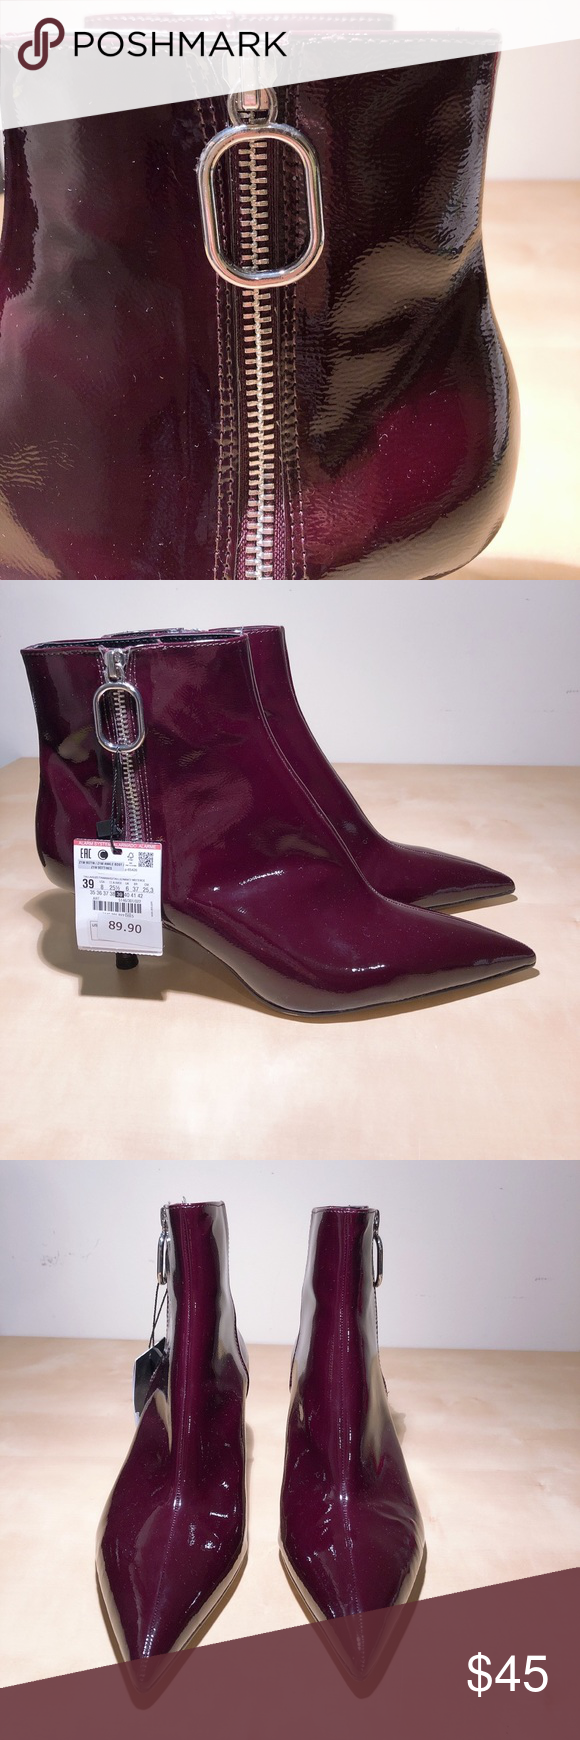 d90b130aee59 NWT Zara Burgundy Patent Heeled Ankle Boots New with tags. Burgundy color  in patent finish